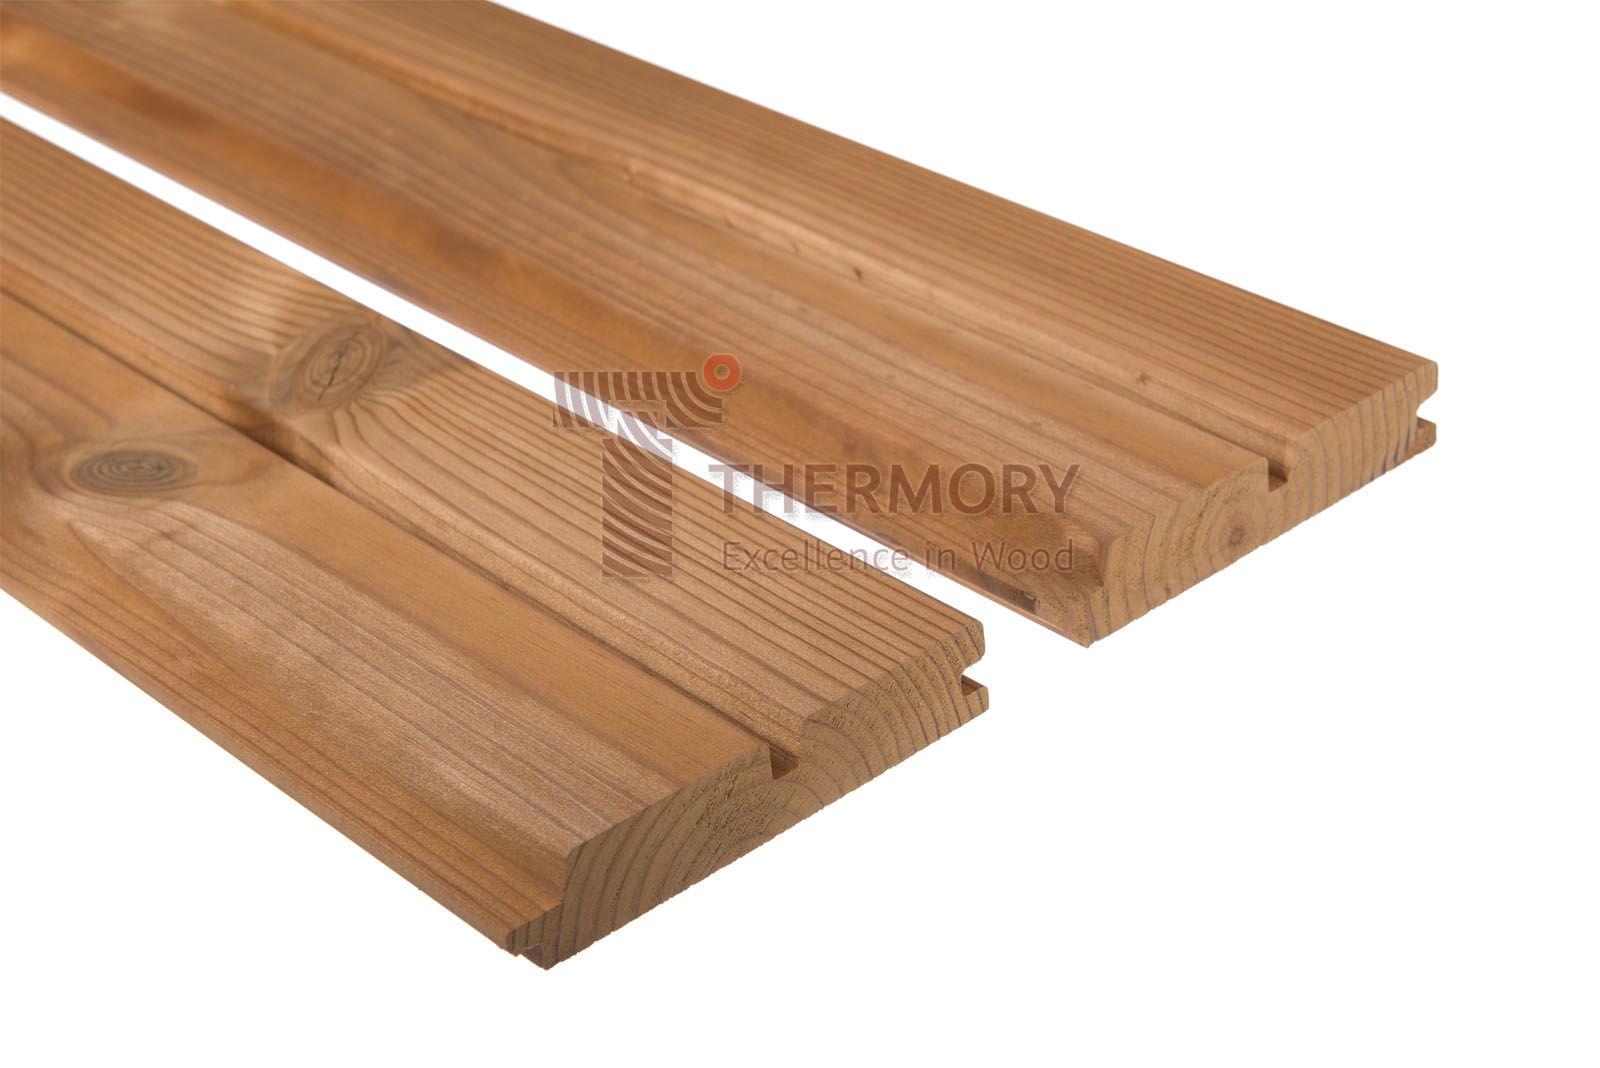 C8 26x140mm - This is a classic profile with no additional fitting systems required.